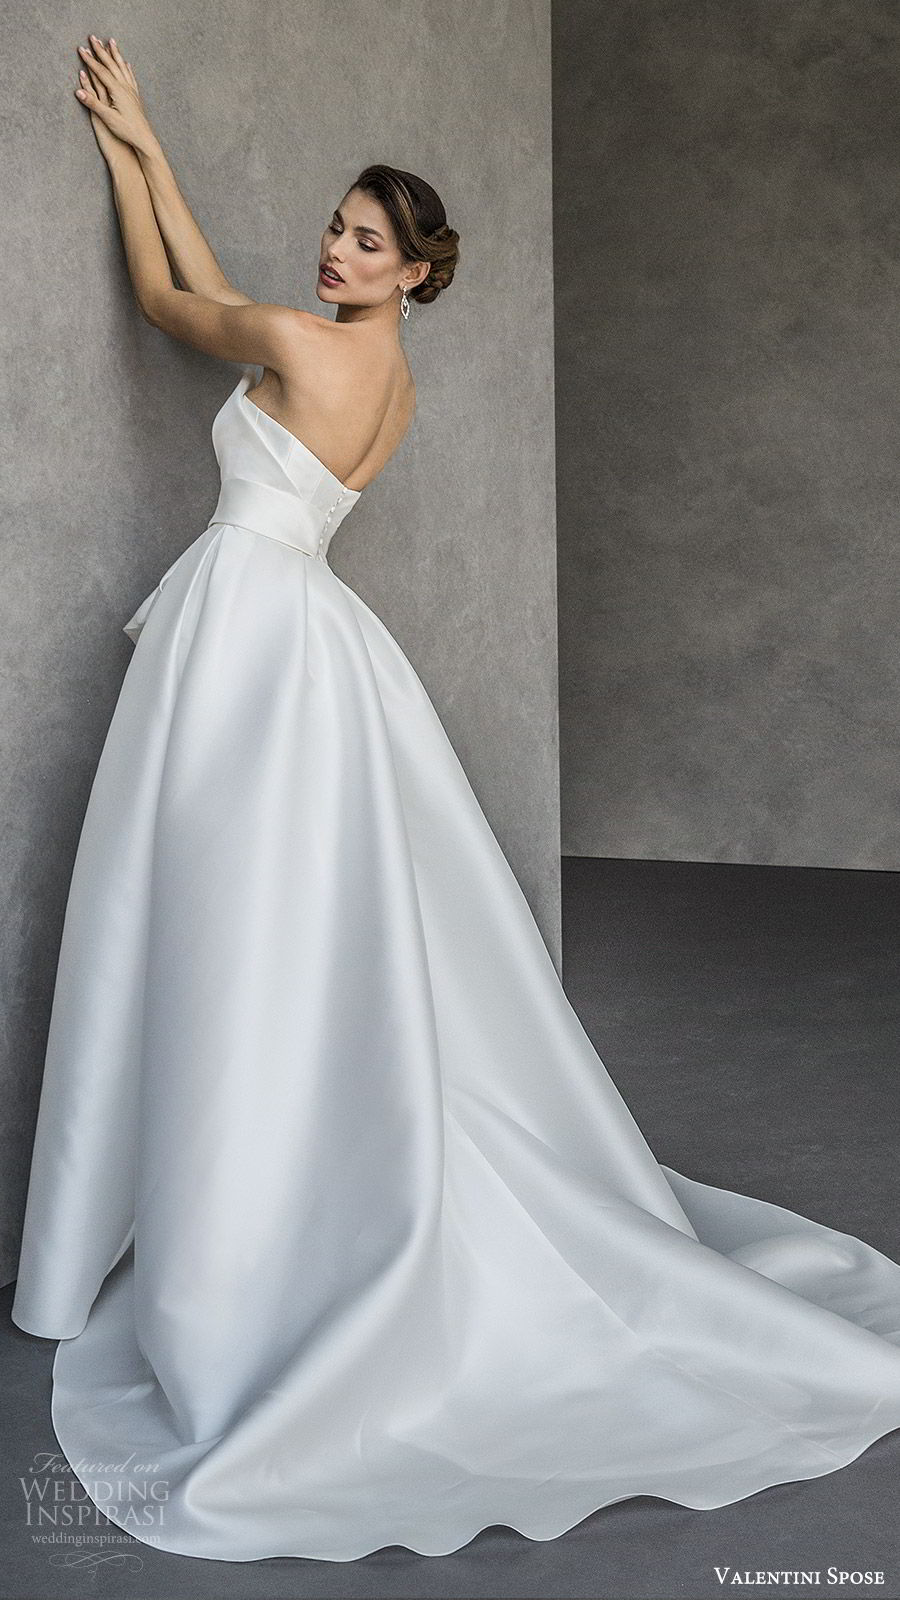 valentini spose spring 2020 bridal strapless sweetheart neckline slit skirt a line ball gown wedding dress (20) elegant modern chapel train bv